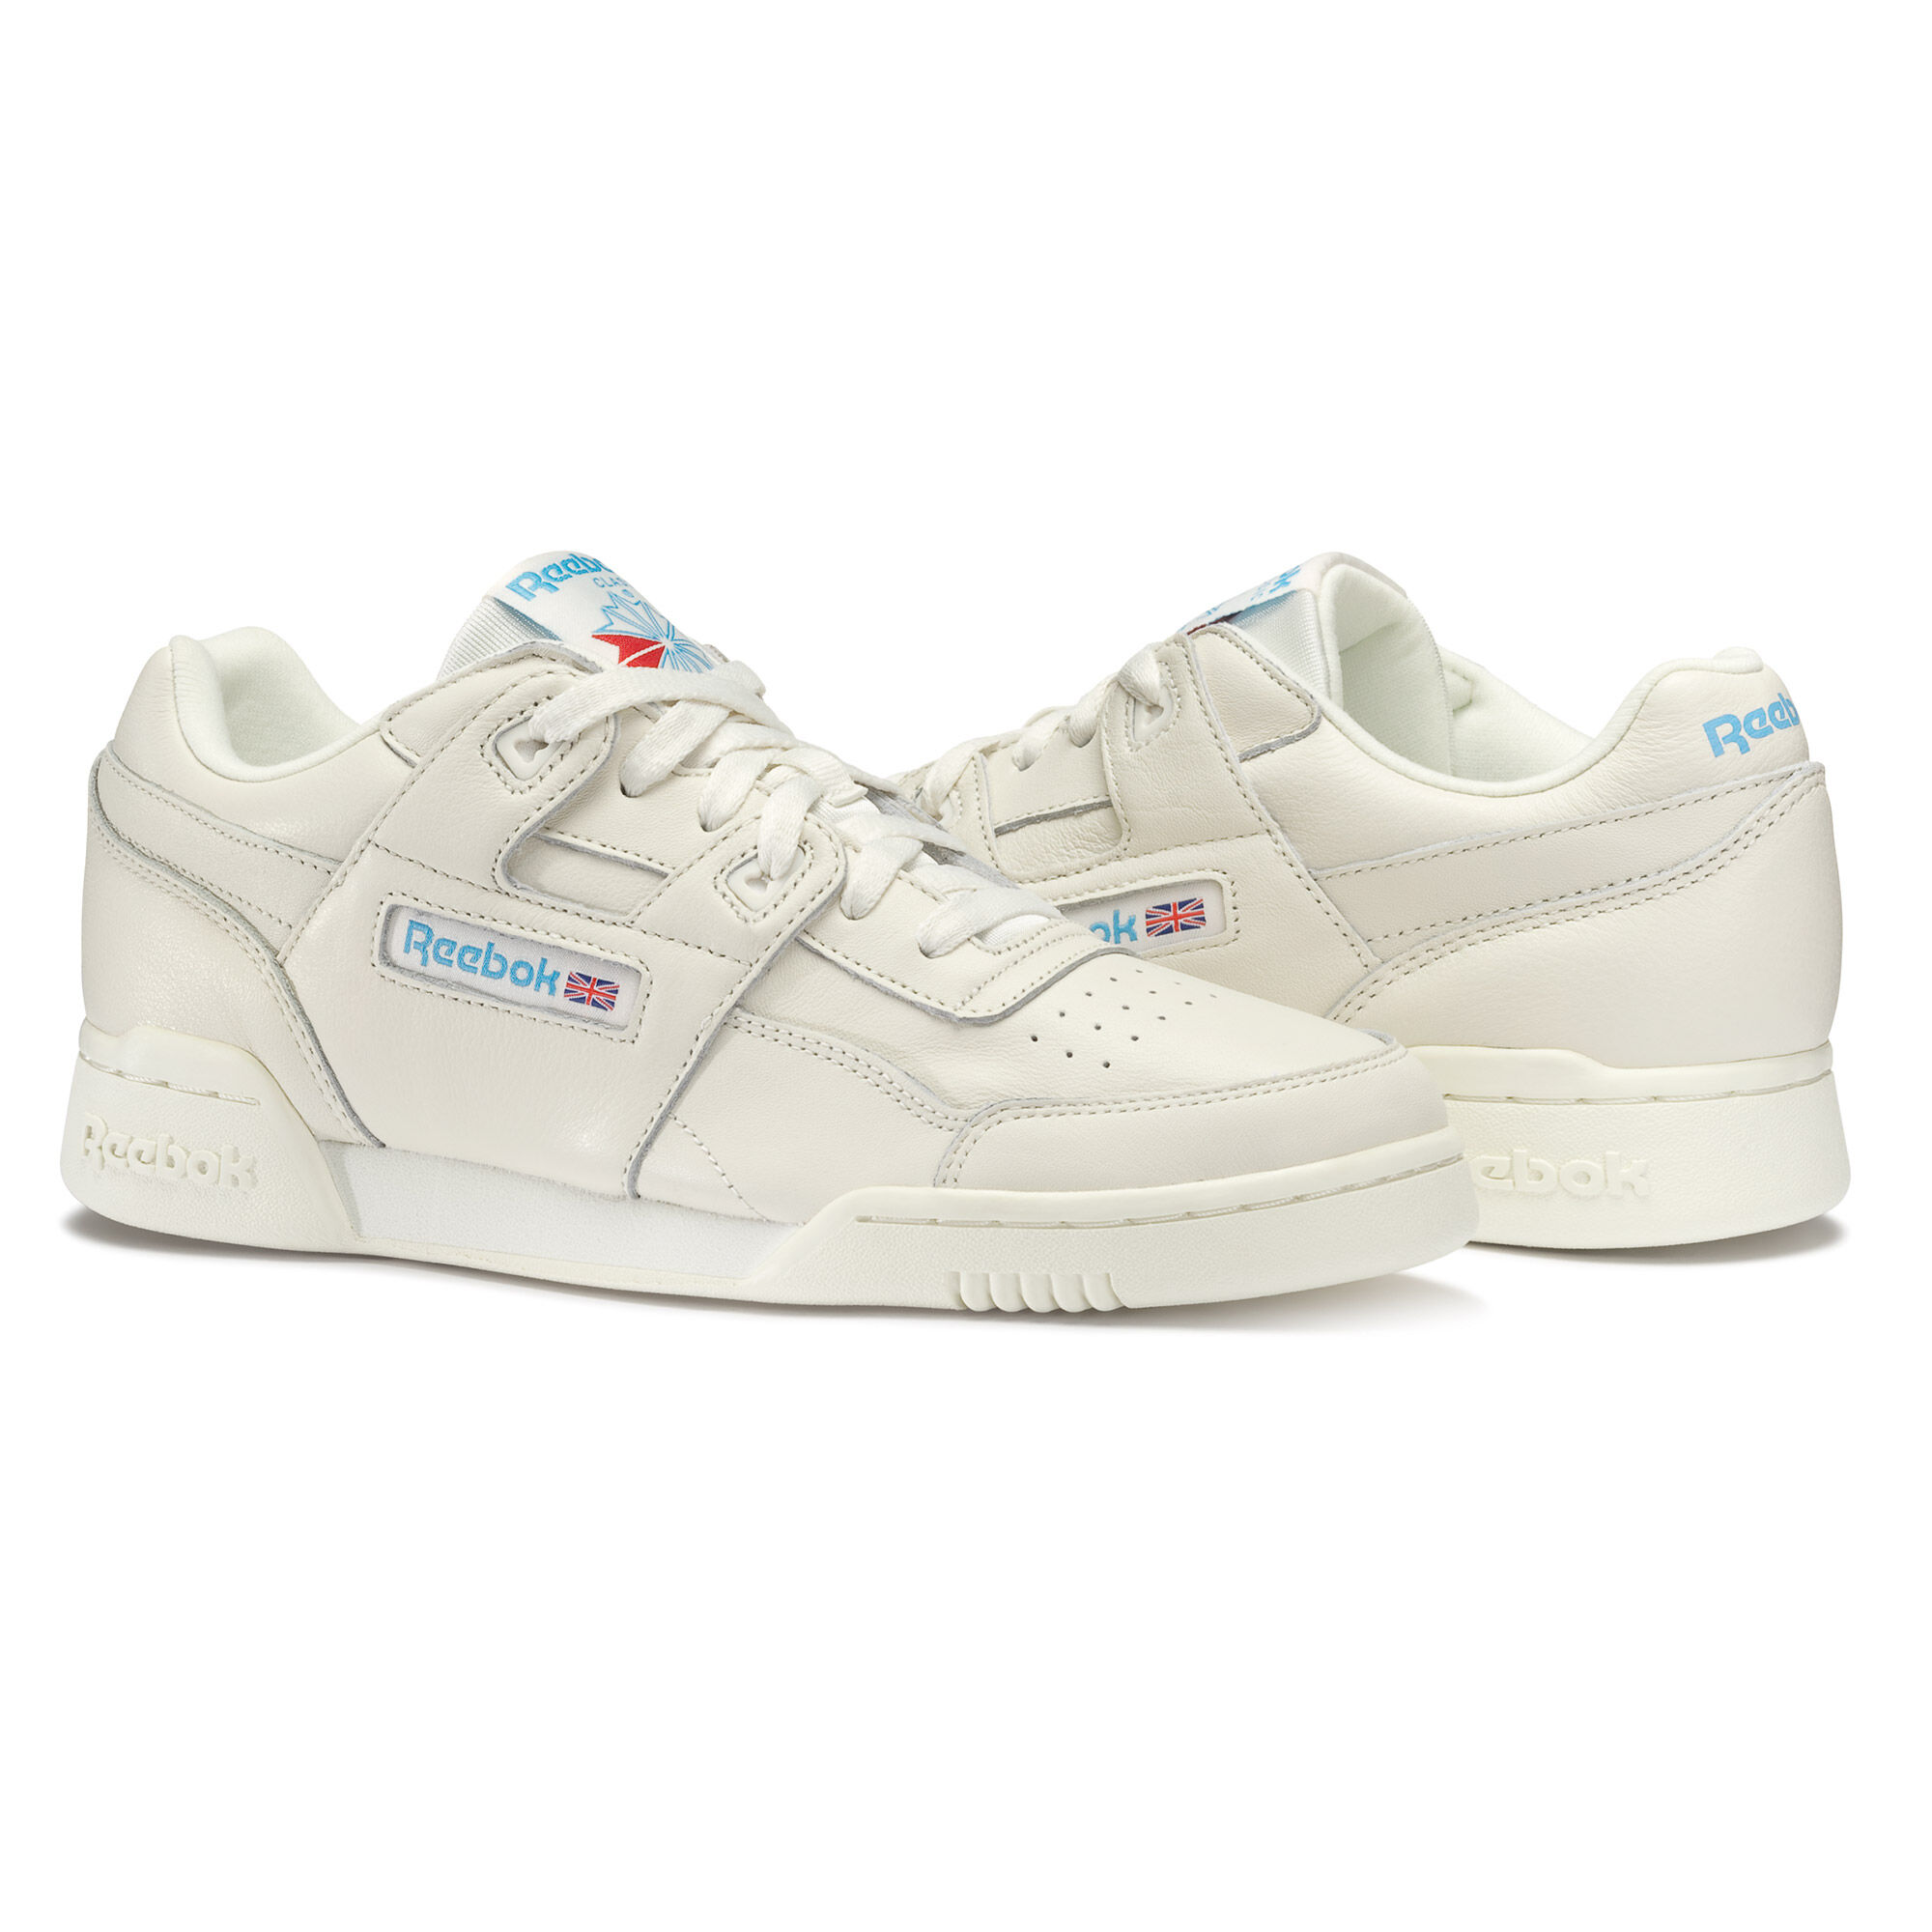 Reebok - Workout Plus Chalk / Athletic Blue Sneaker Schuhe